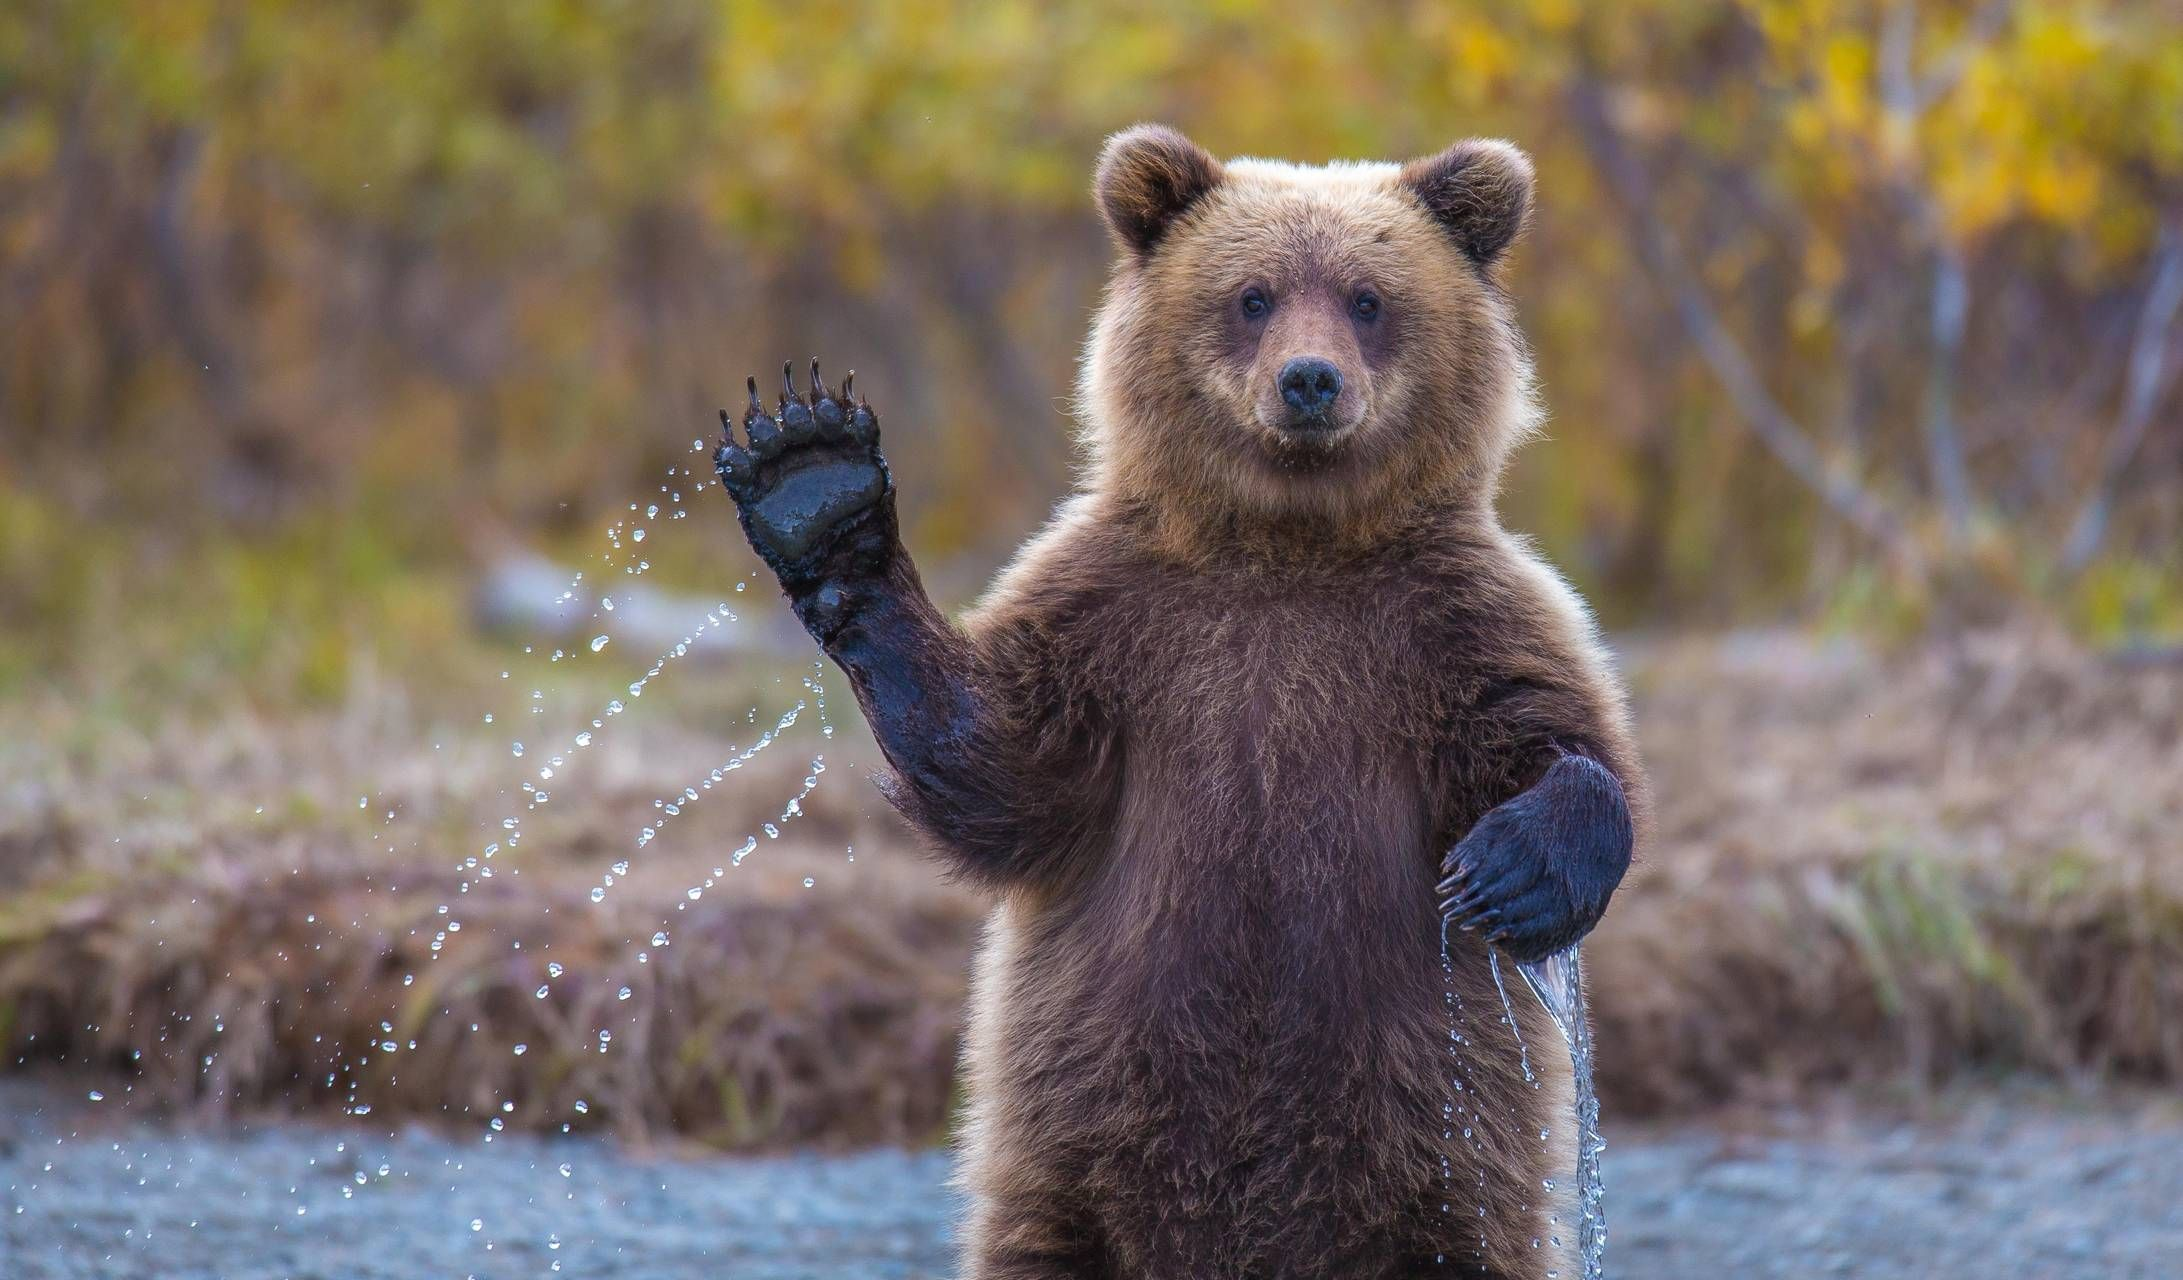 Download Cute Waving Bear Wallpaper by talpur93 - 17 - Free on ZEDGE™ now.  Browse millions of popular bear Wallpape… | Brown bear, Waving bear,  Wildlife photography